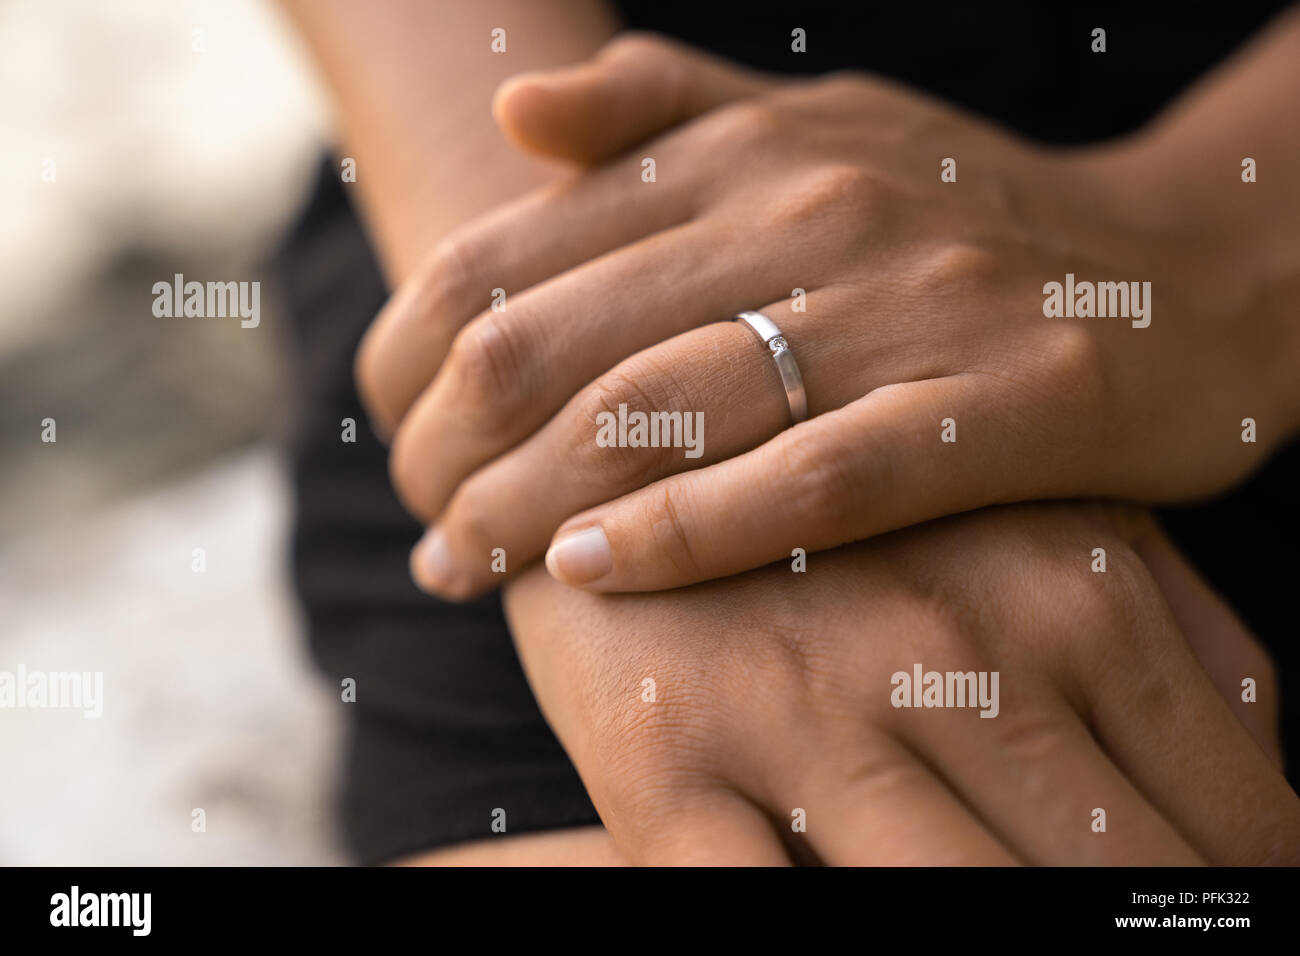 engagement ring on females hand after wedding proposal - Stock Image